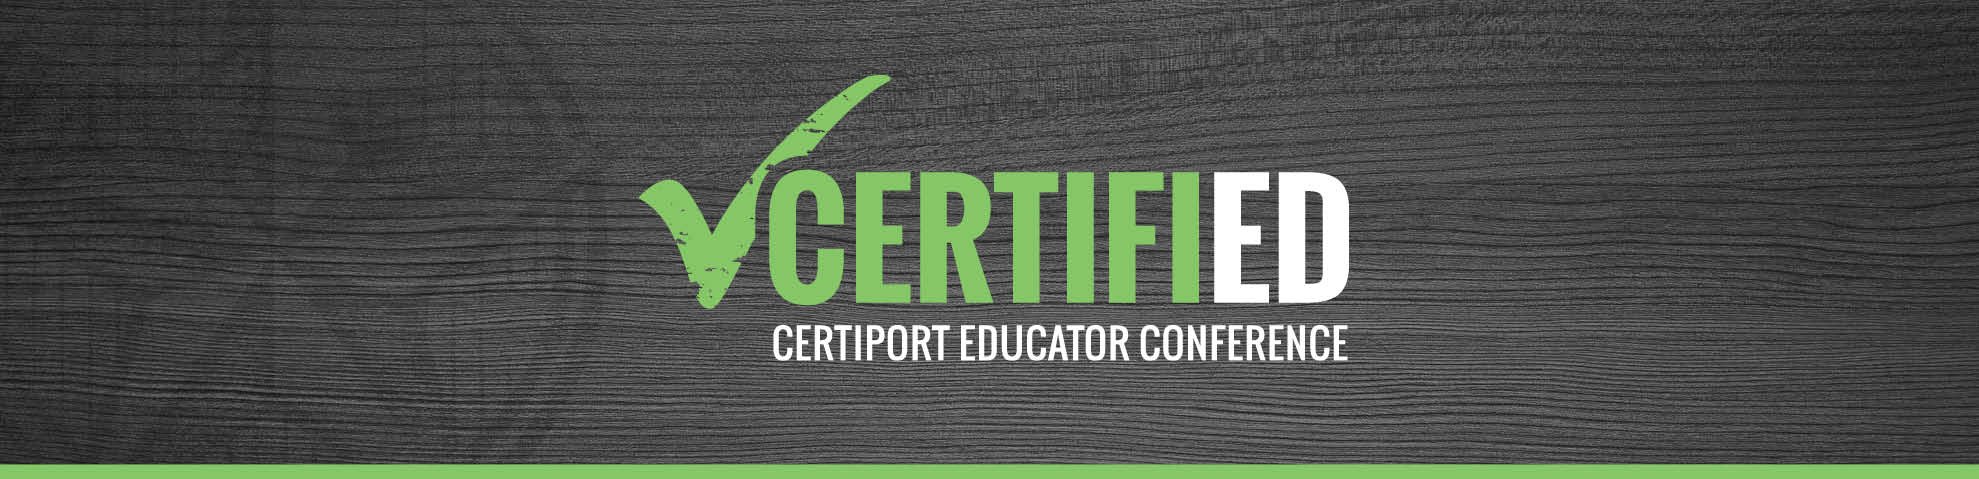 2020 CERTIFIED - Certiport Educator Conference